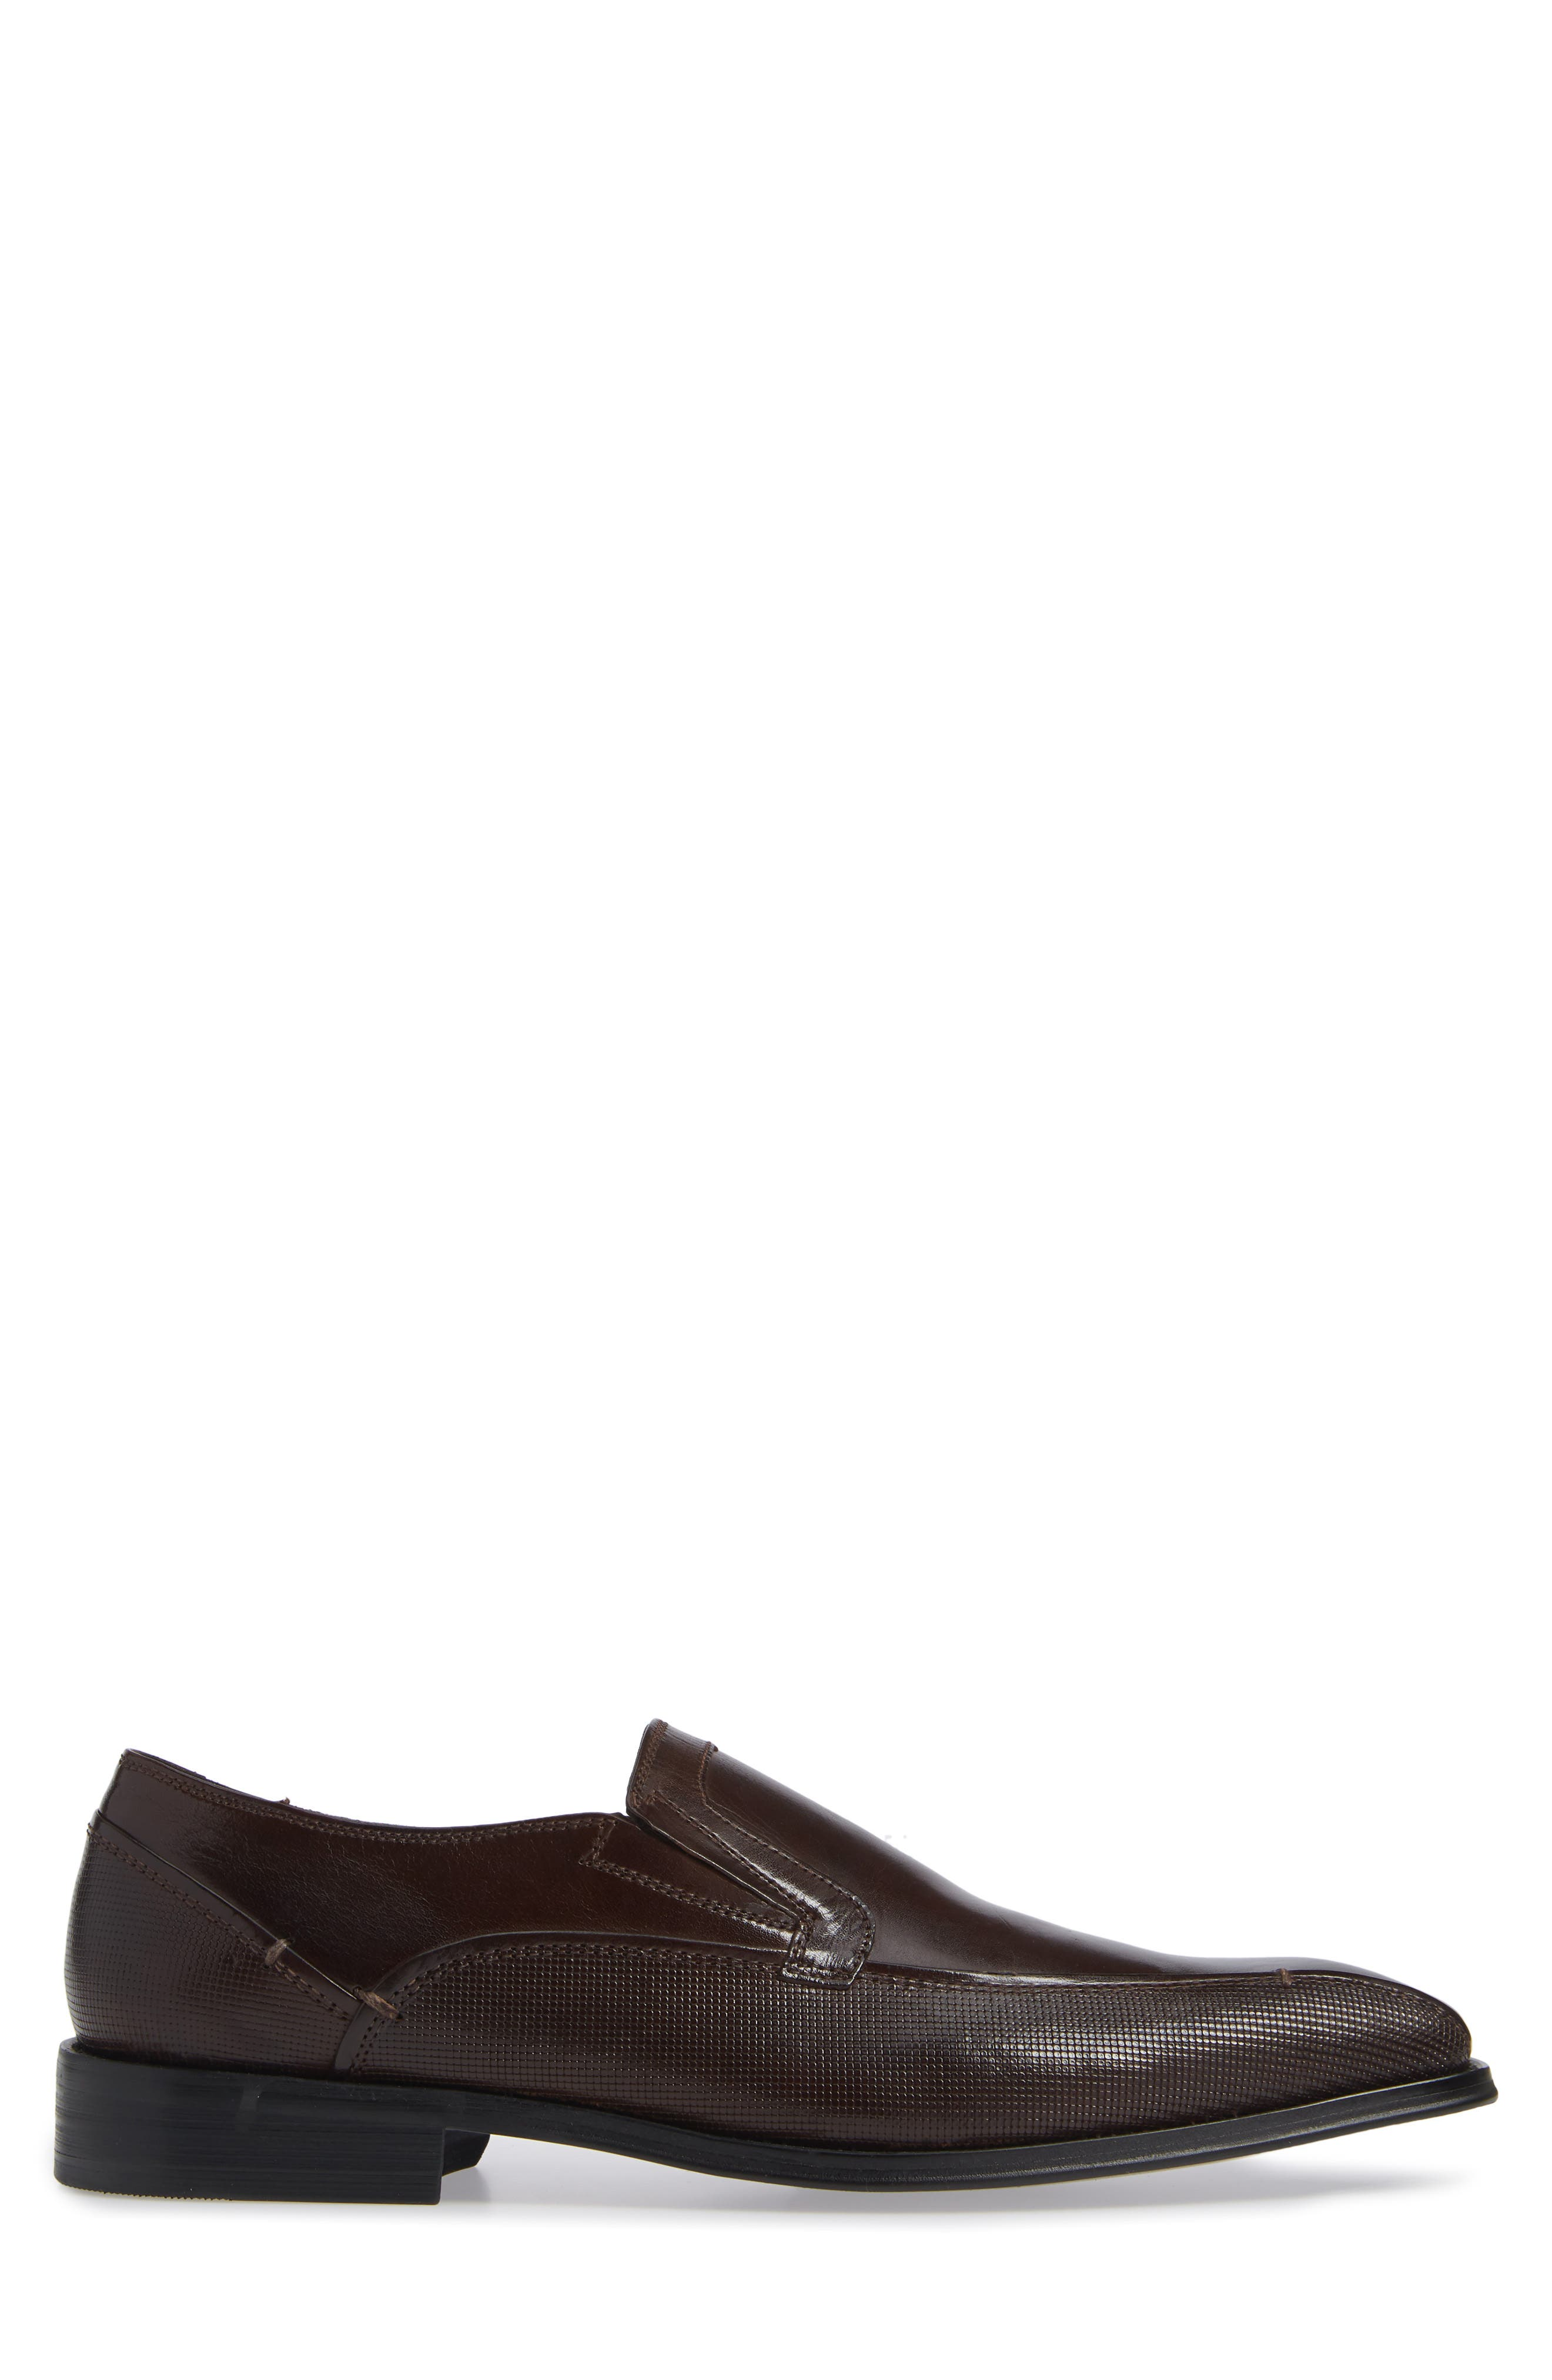 Witter Bike Toe Loafer,                             Alternate thumbnail 3, color,                             BROWN LEATHER